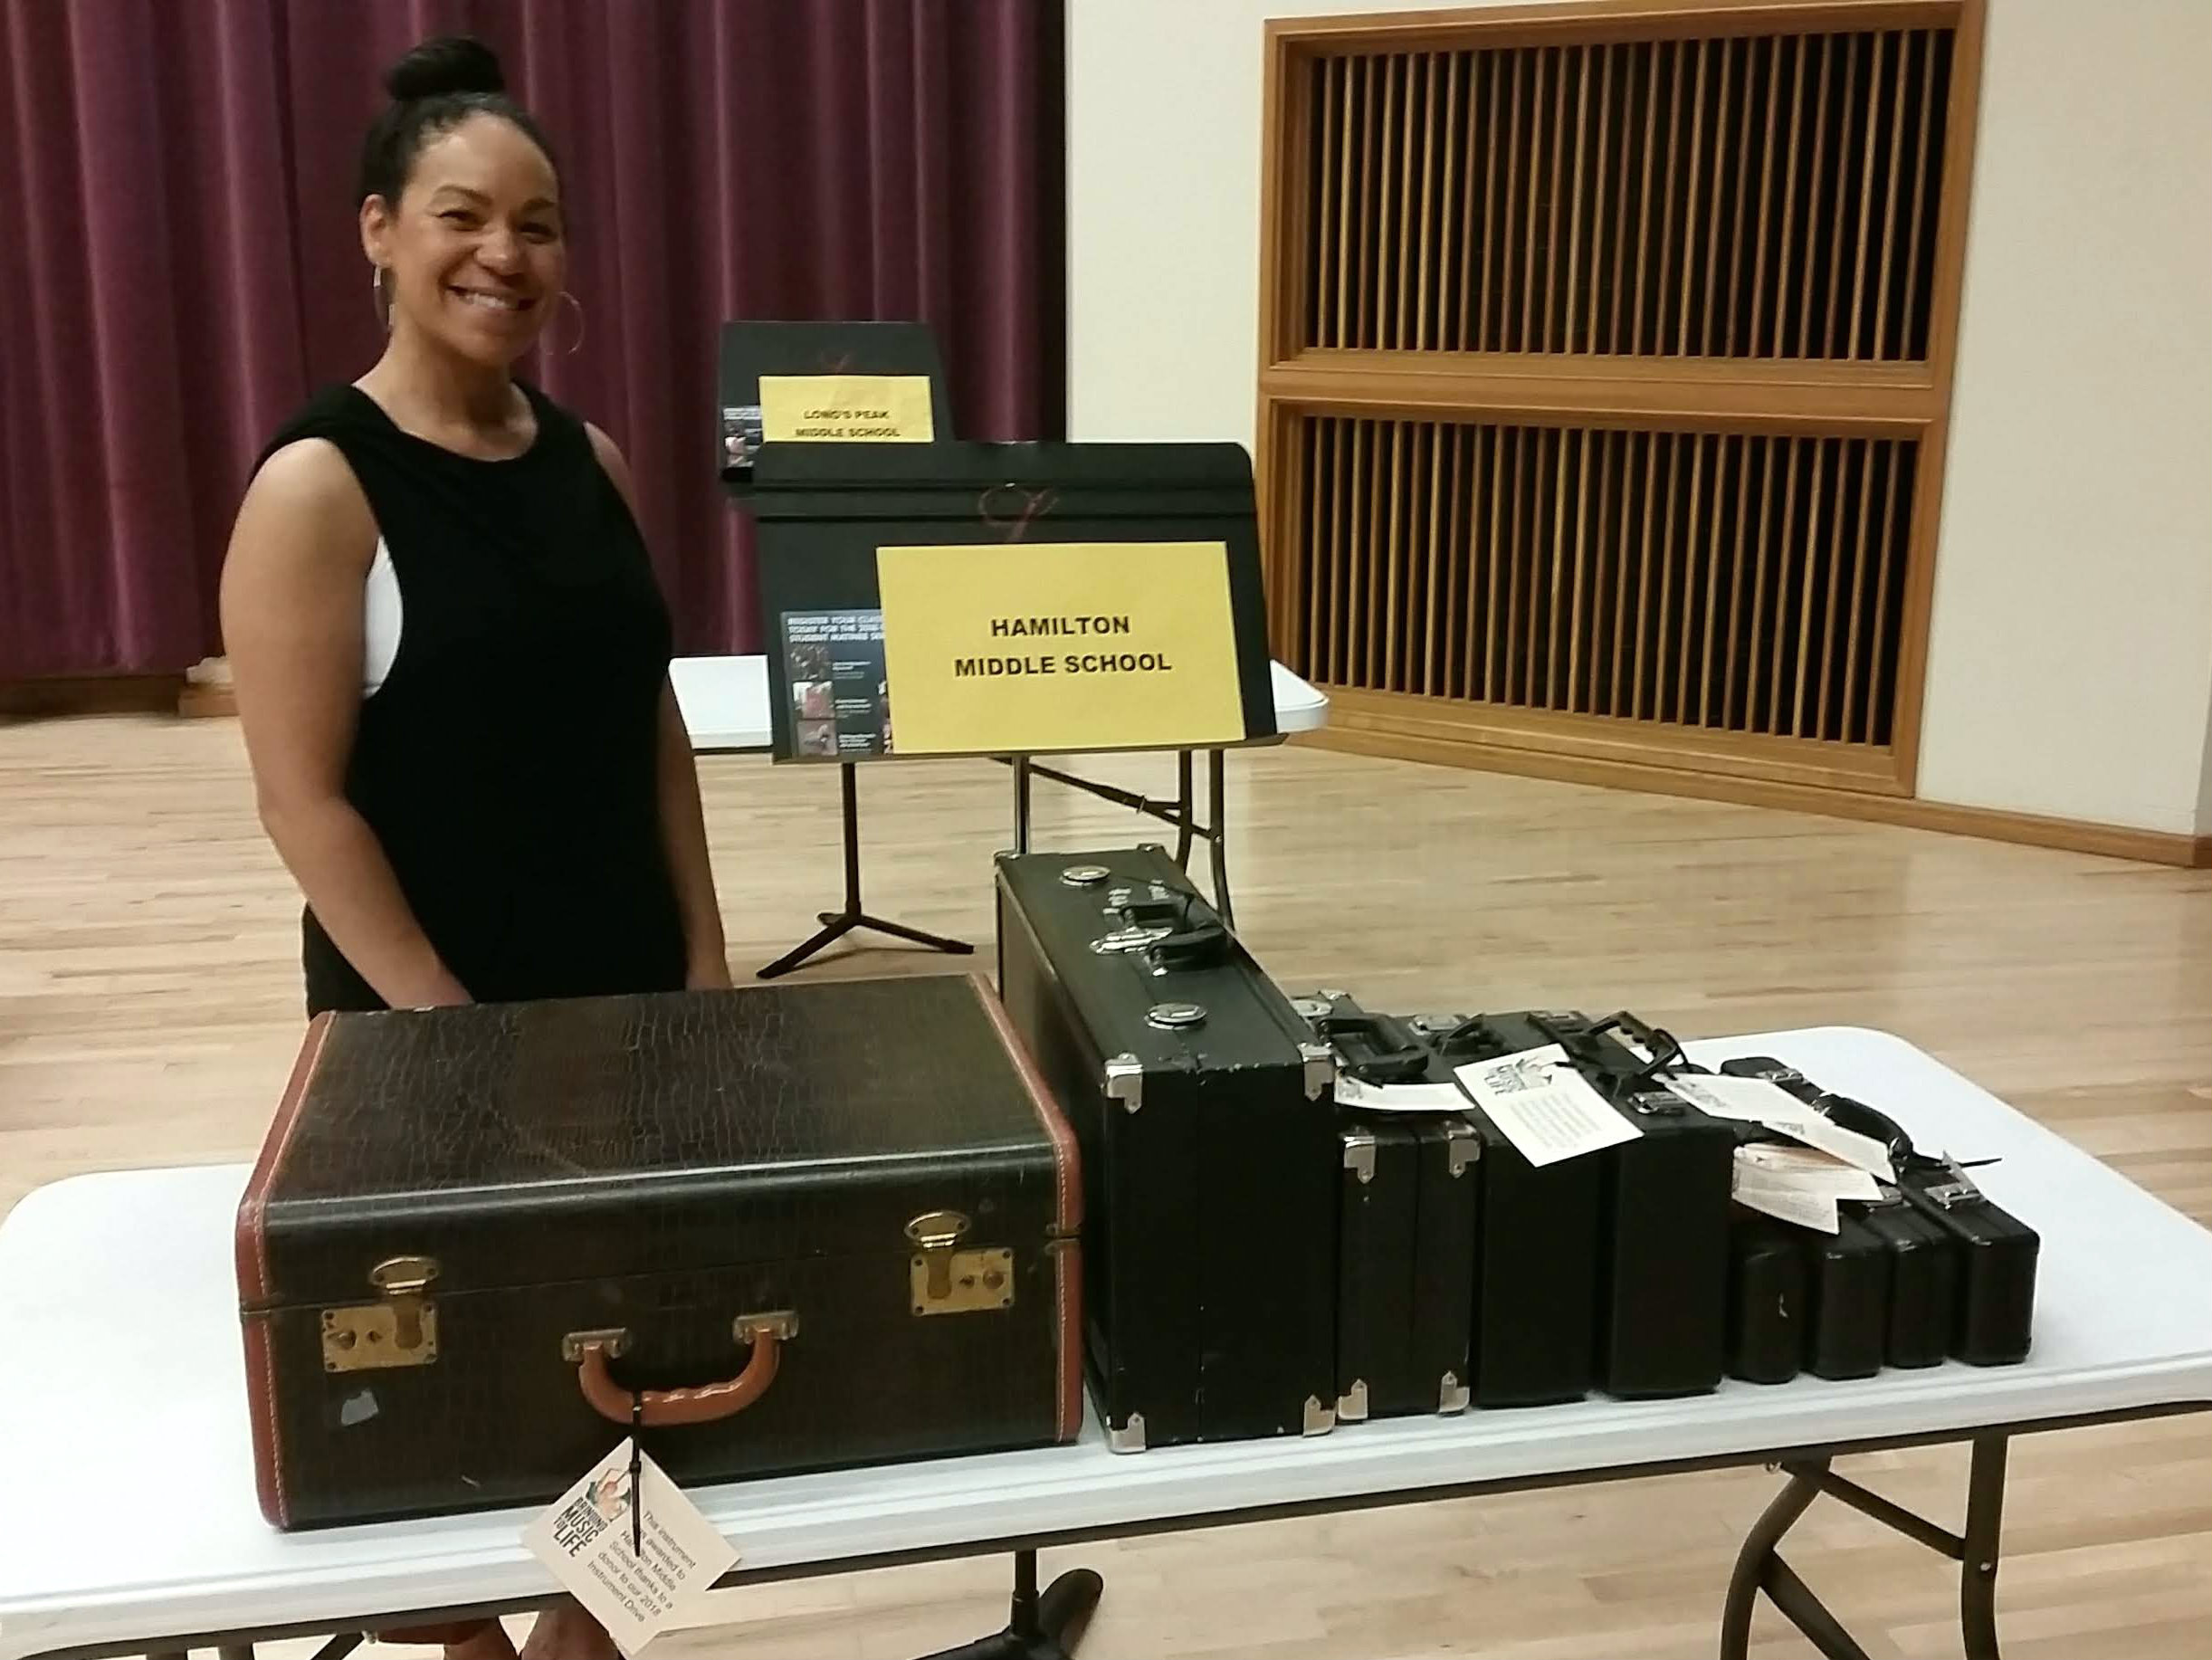 <p>Hamilton Middle School band teacher Priscilla Shaw poses with instruments she's picking up from the Bringing Music to Life instrument distribution day. </p>